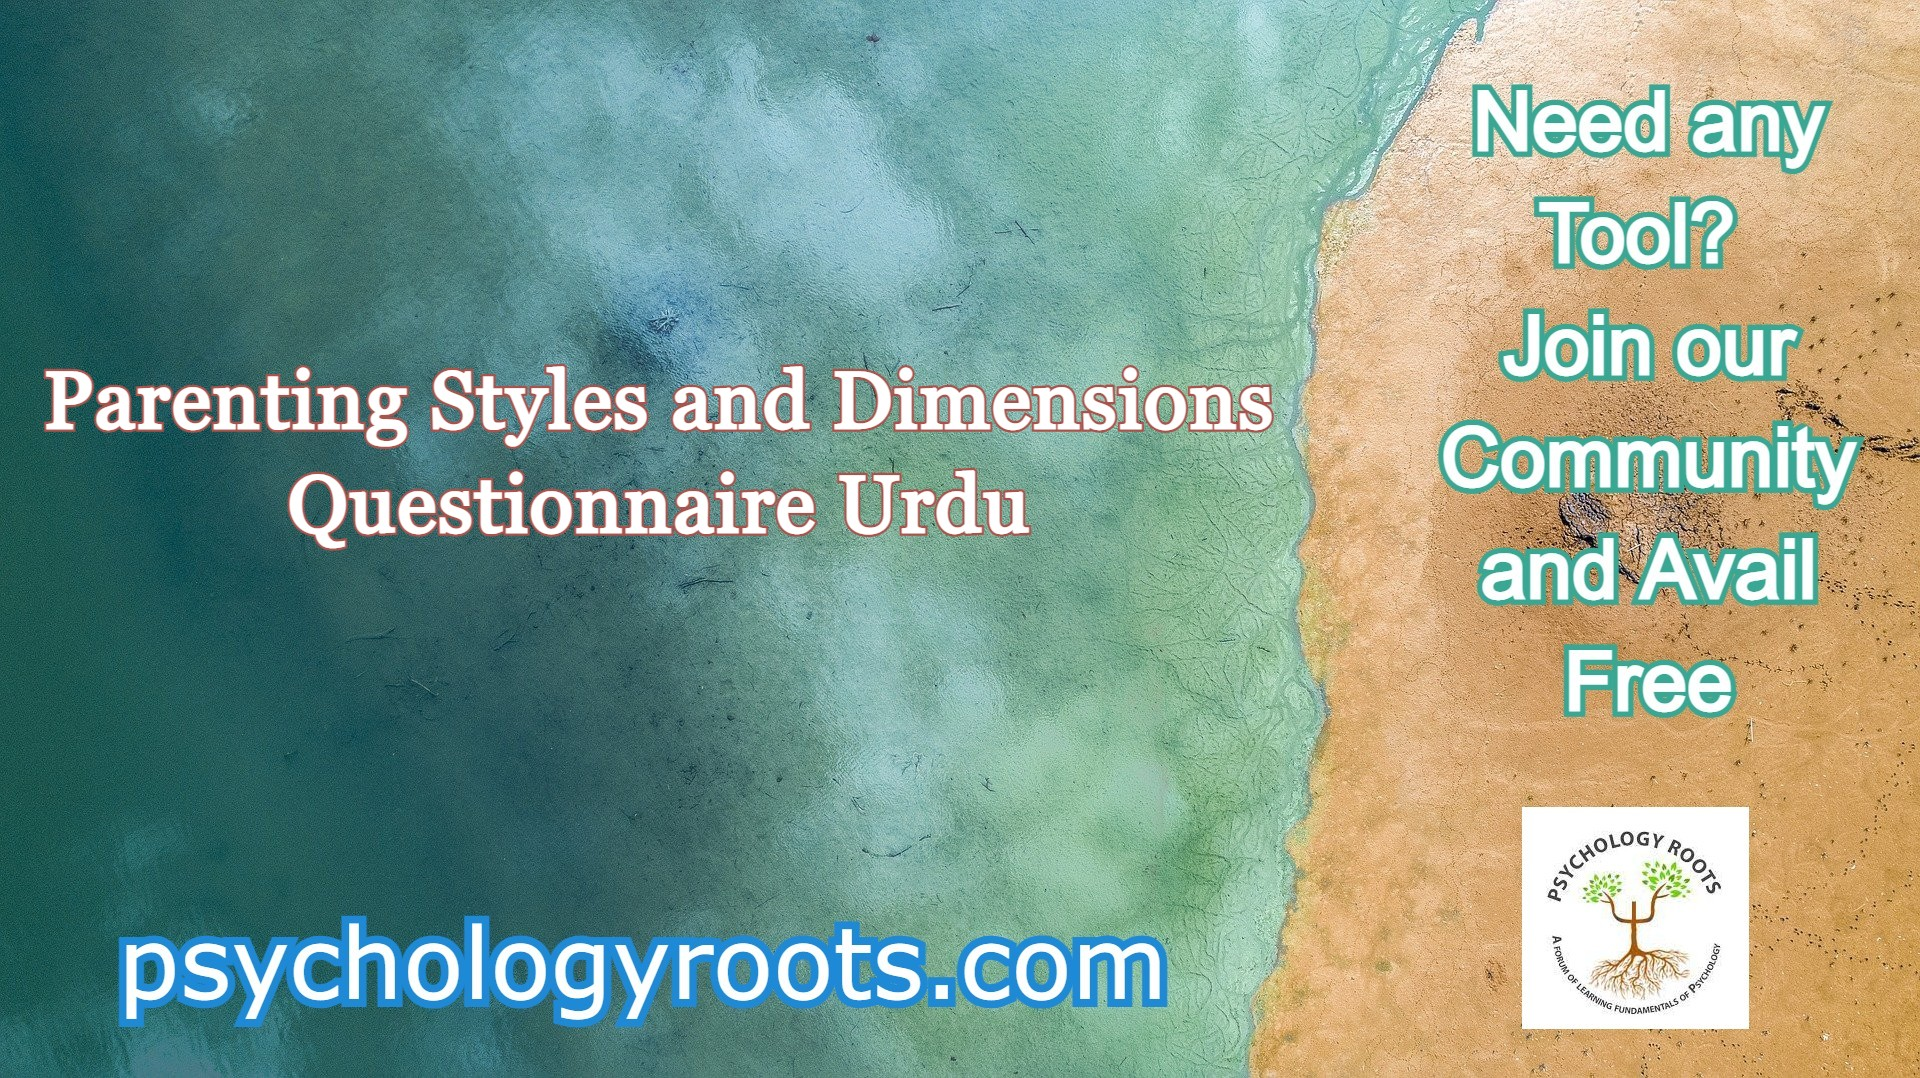 Parenting Styles and Dimensions Questionnaire Urdu